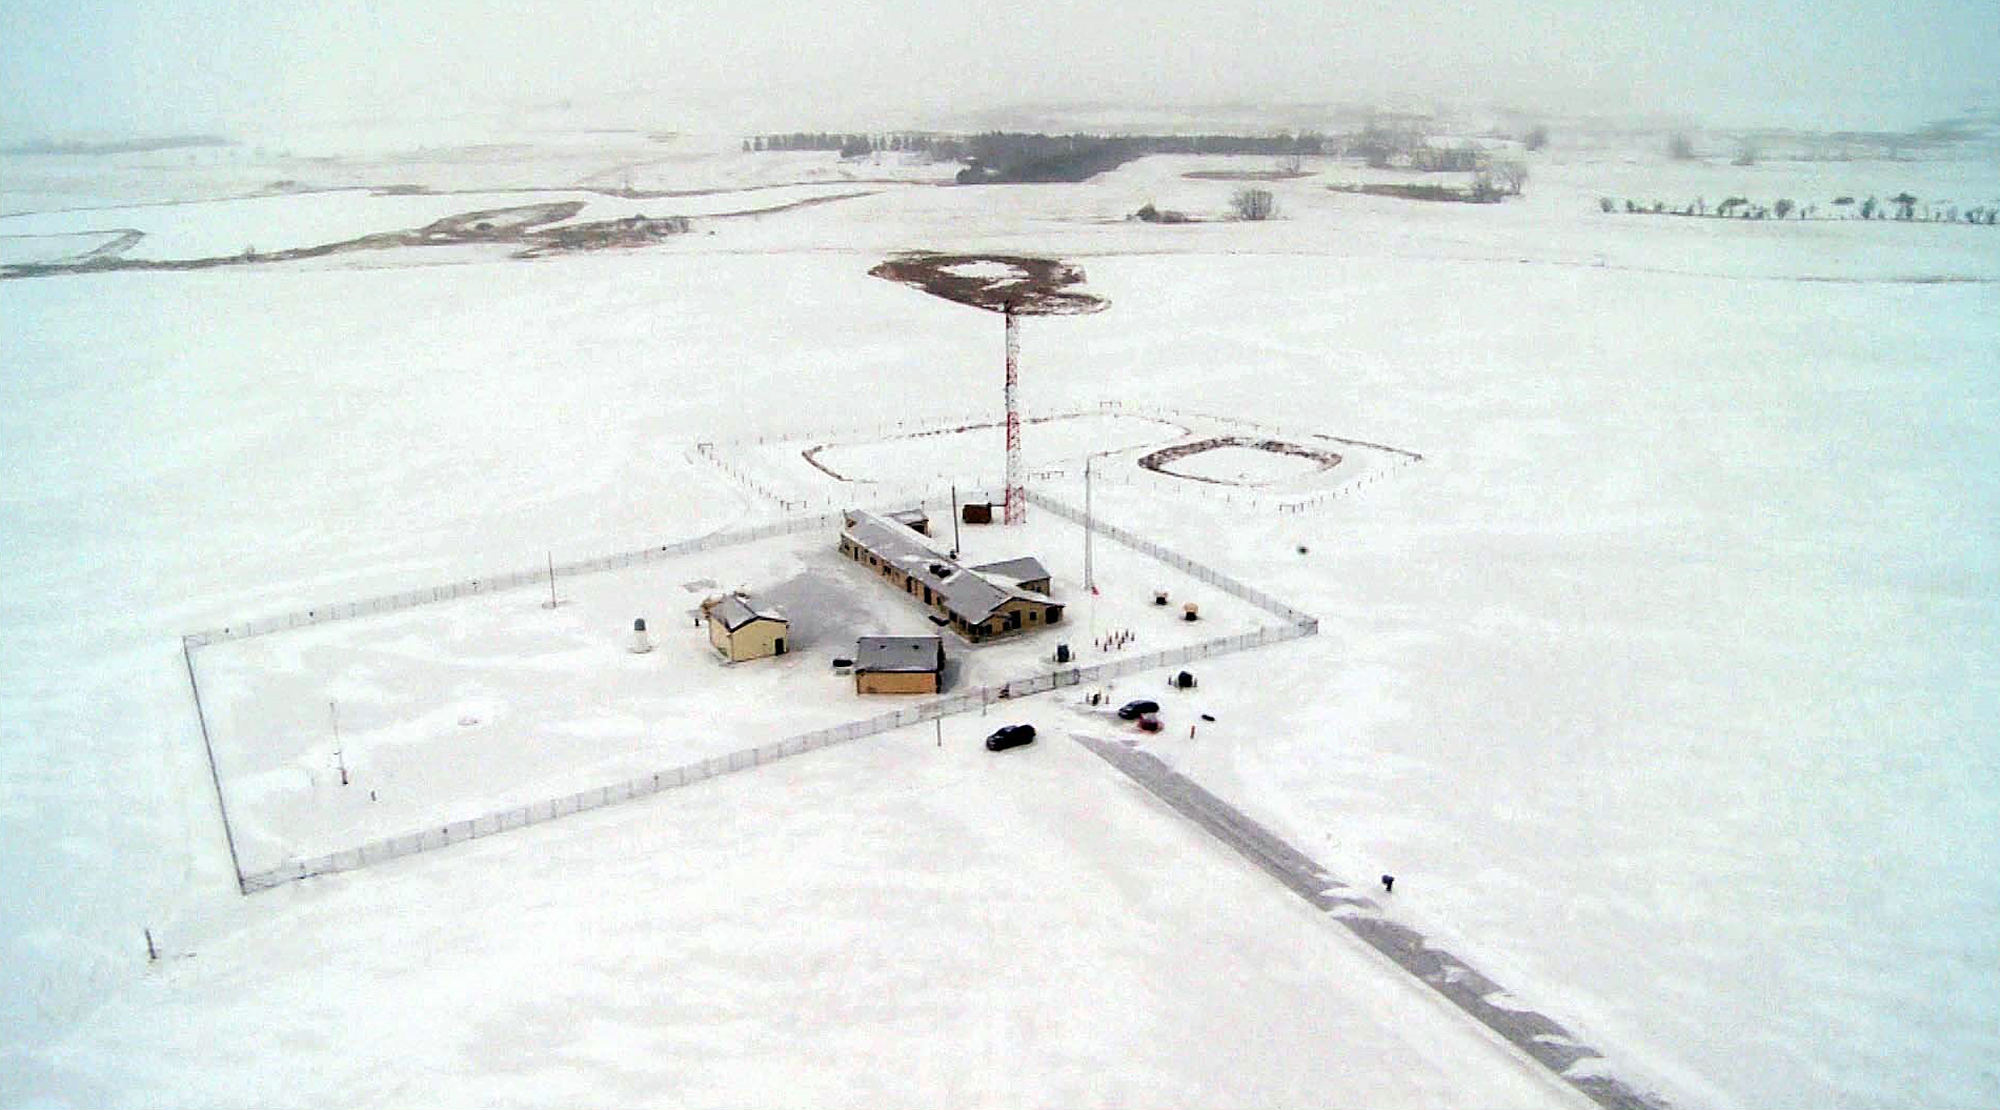 A missile launch-control facility near Minot Air Force Base.